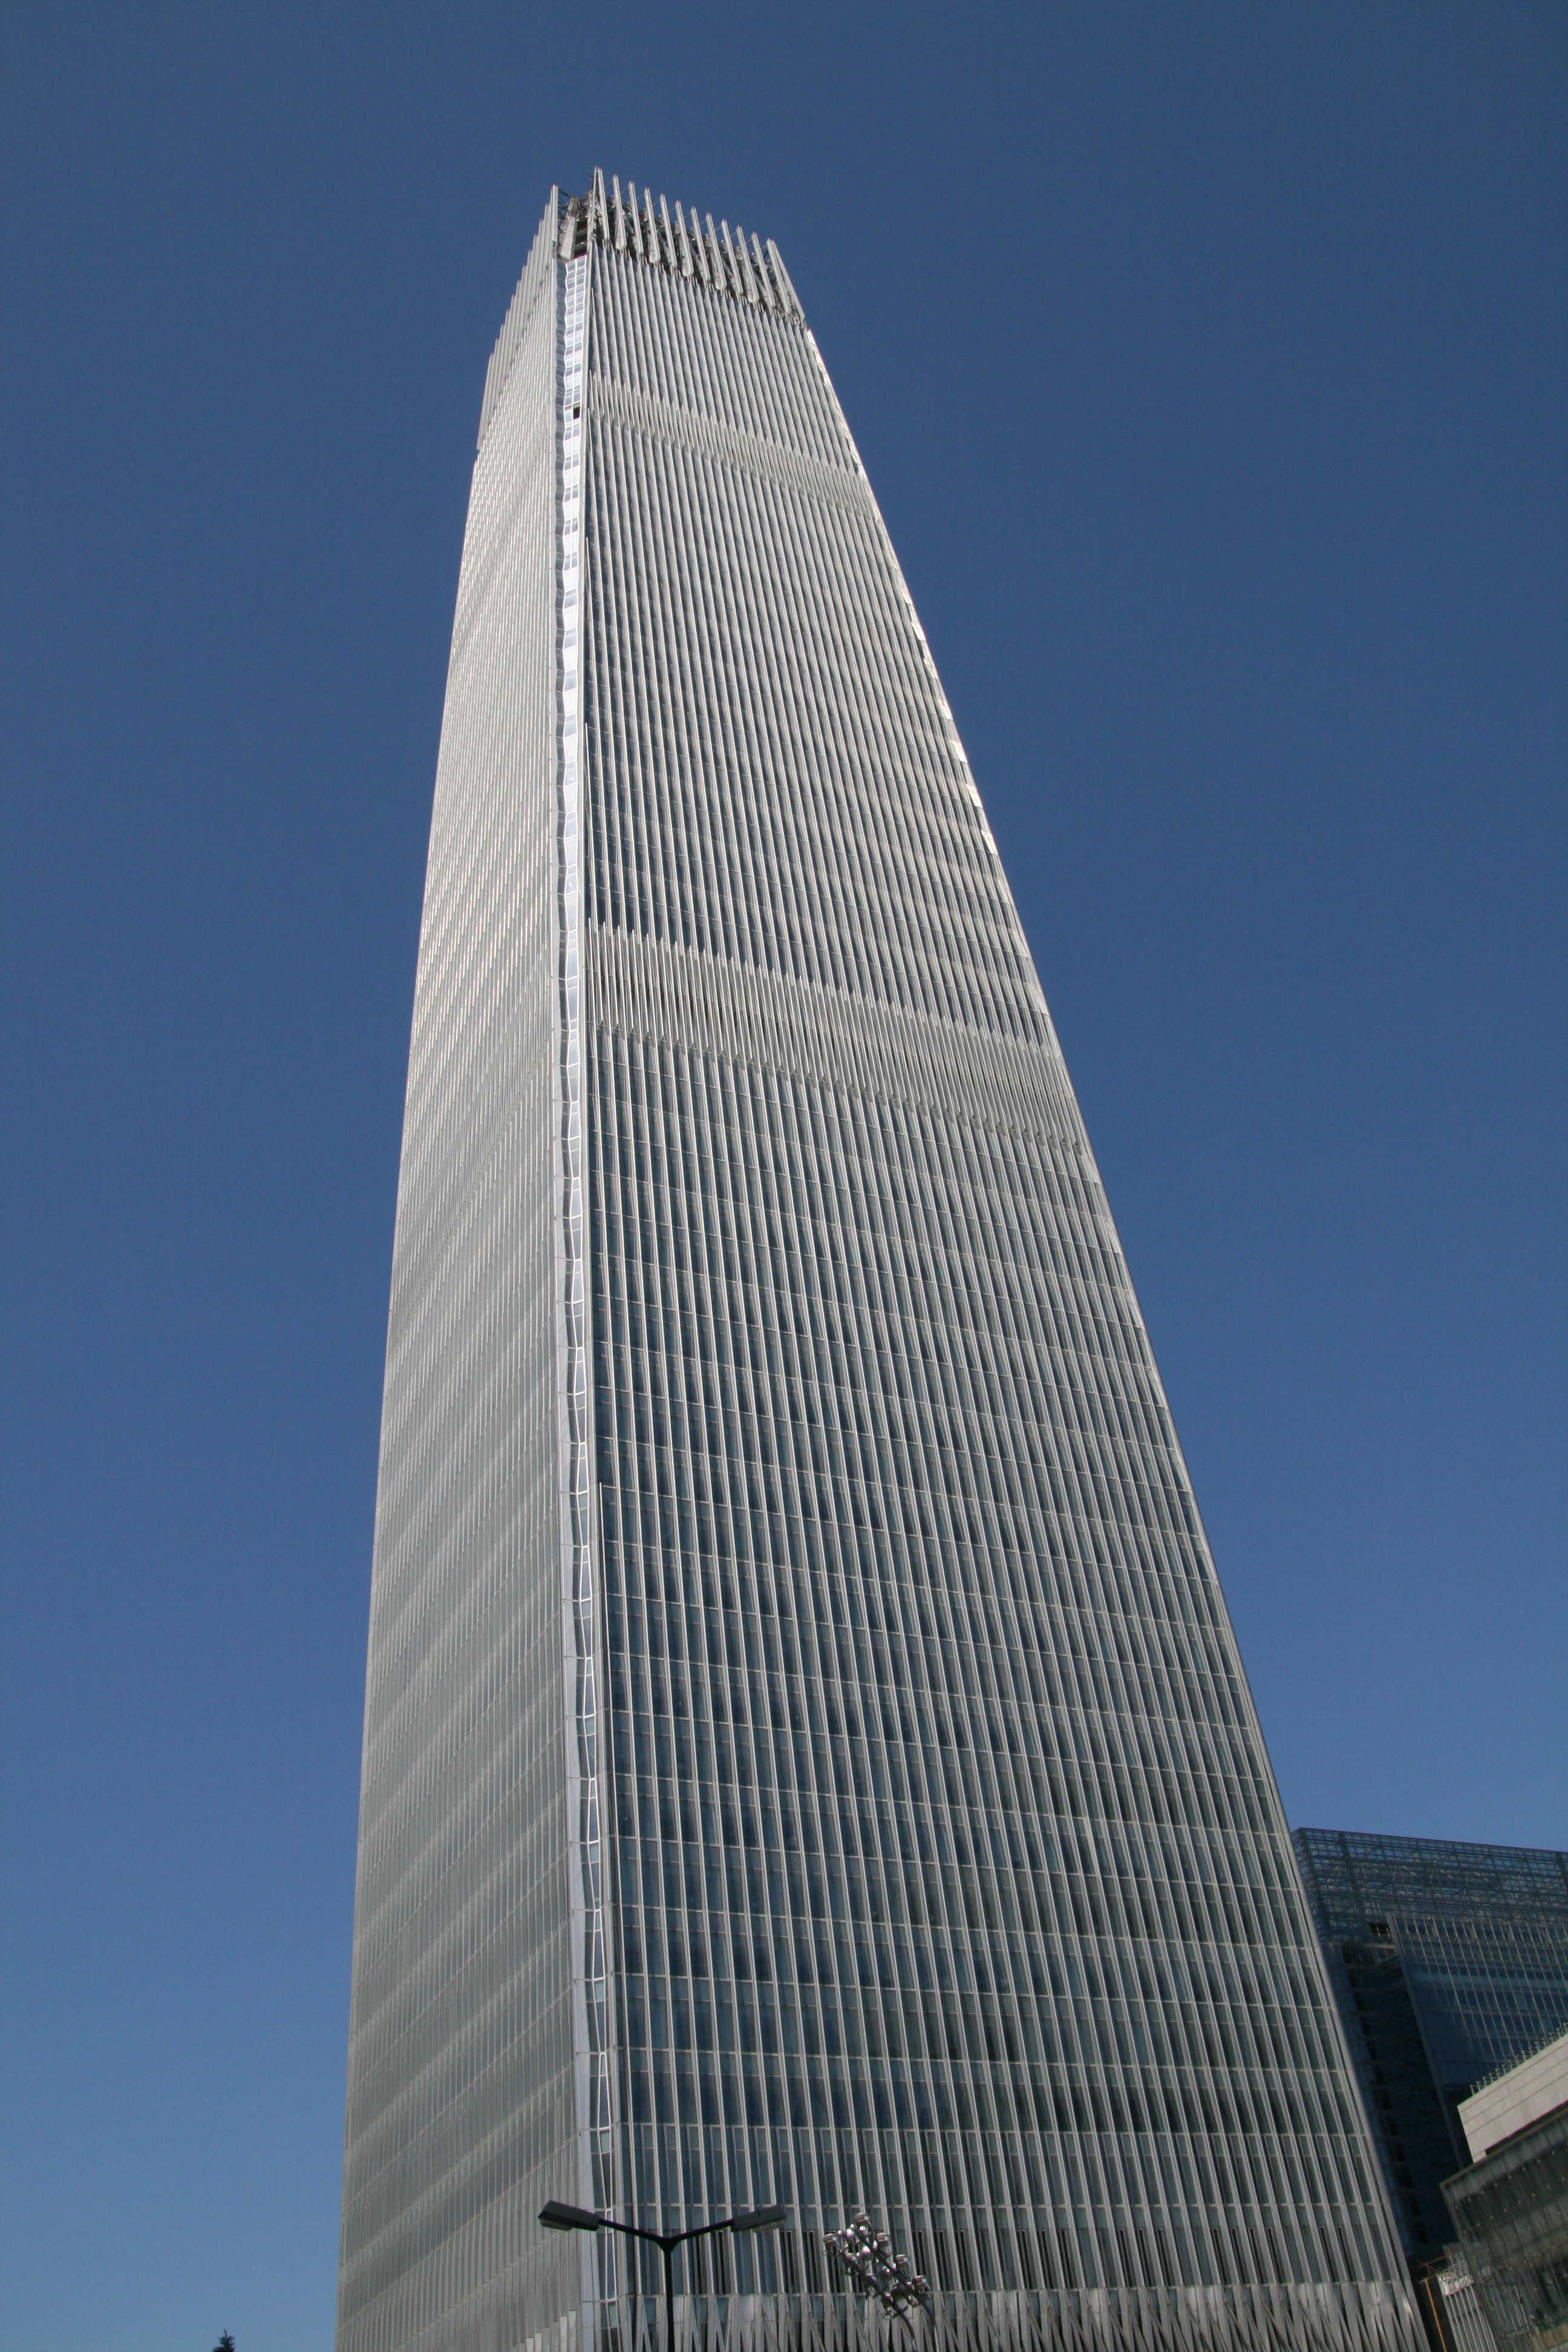 China World Trade Center Tower III - Wikipedia, the free encyclopedia